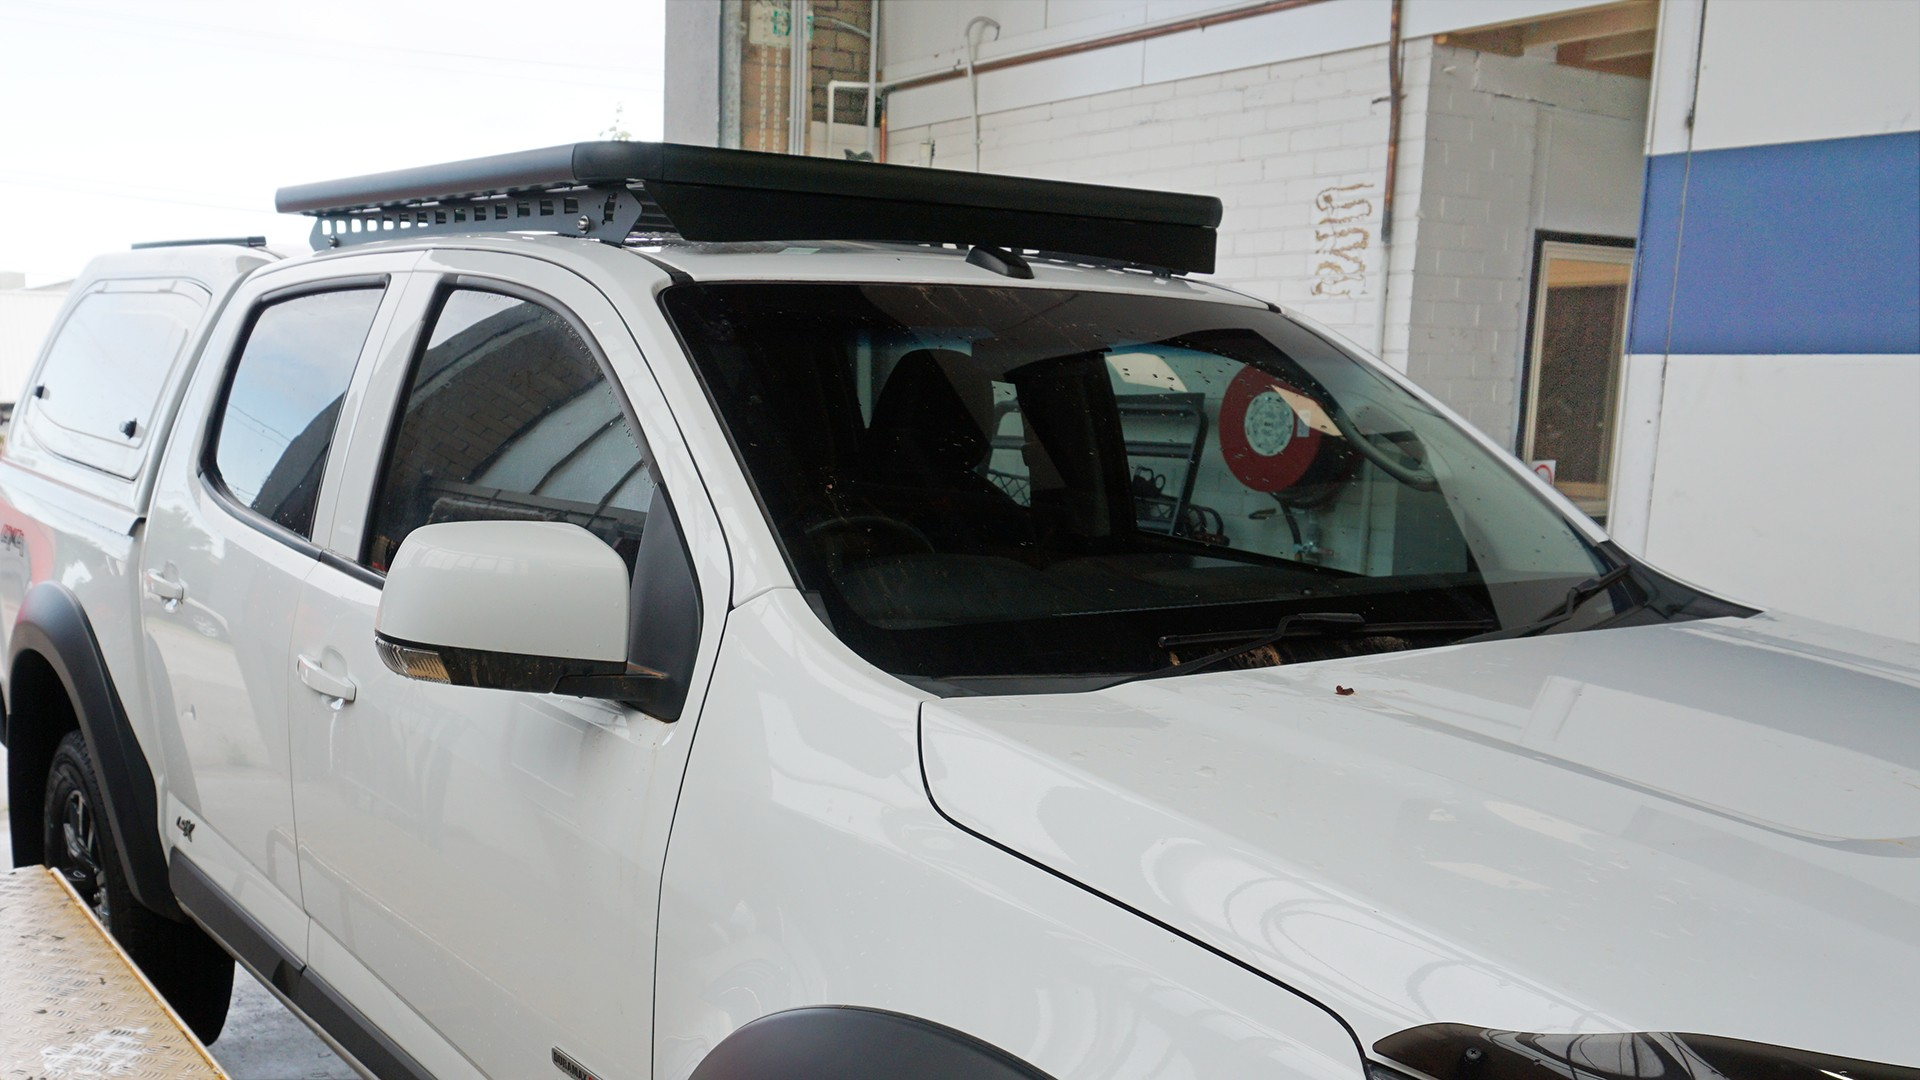 Holden Colorado dual cab ute with a Wedgetail roof rack installed.